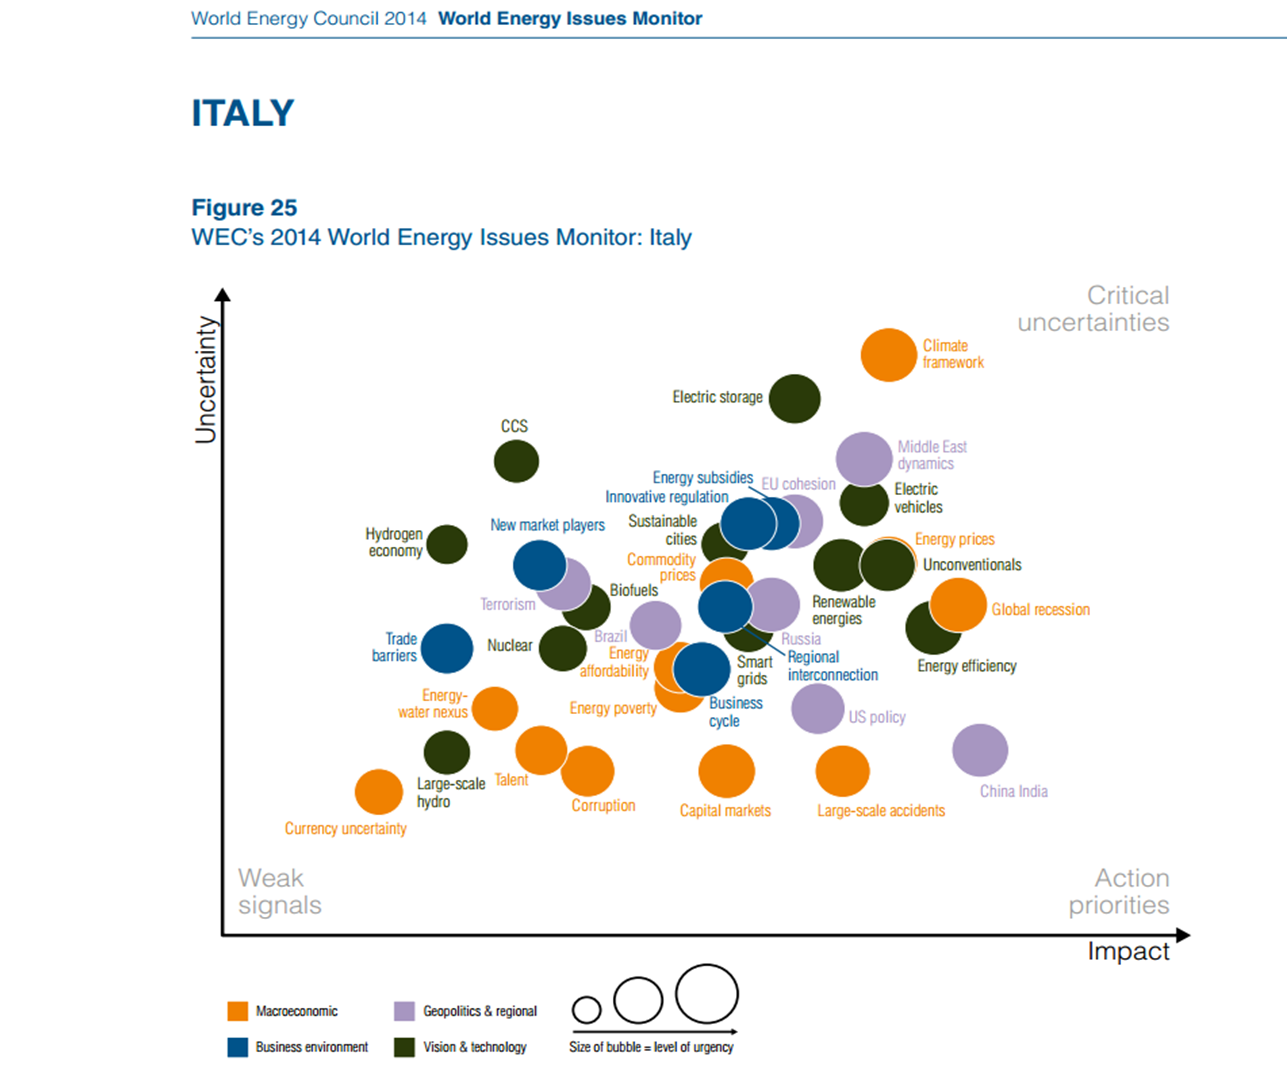 The Italian Issues Map_2014